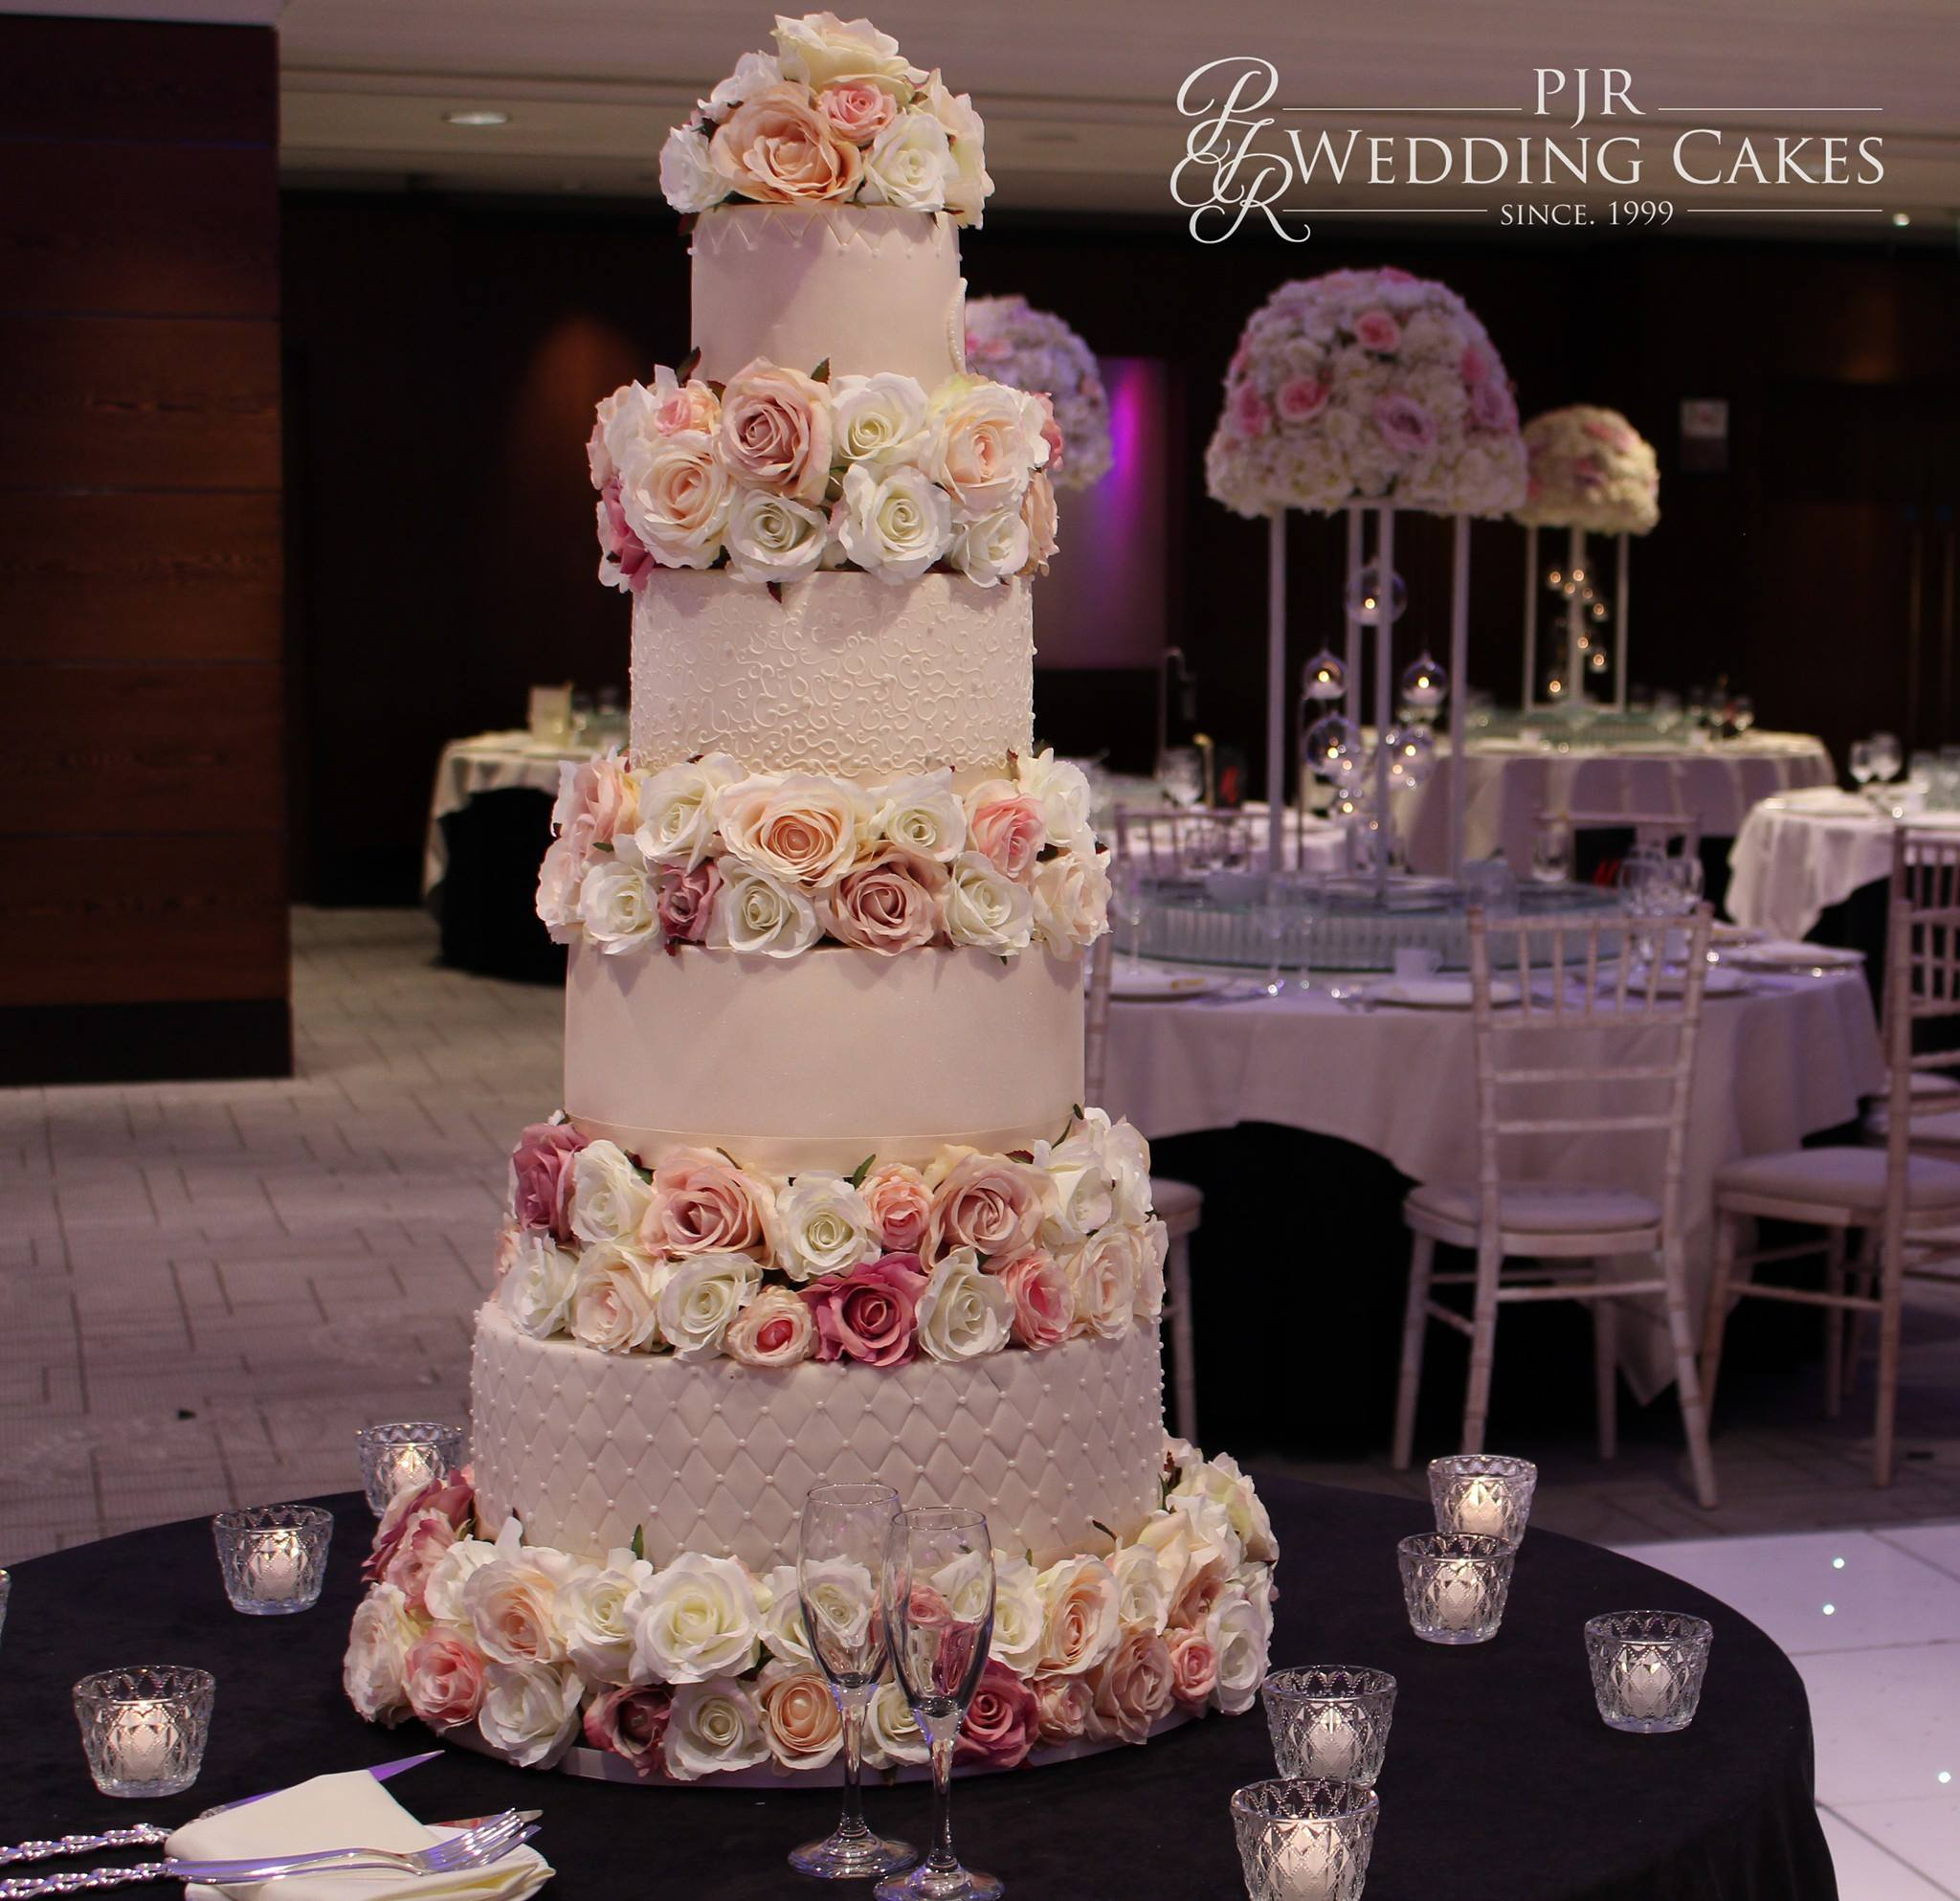 asian wedding cakes in london creating bespoke wedding cakes since 1999 pjr wedding 10875